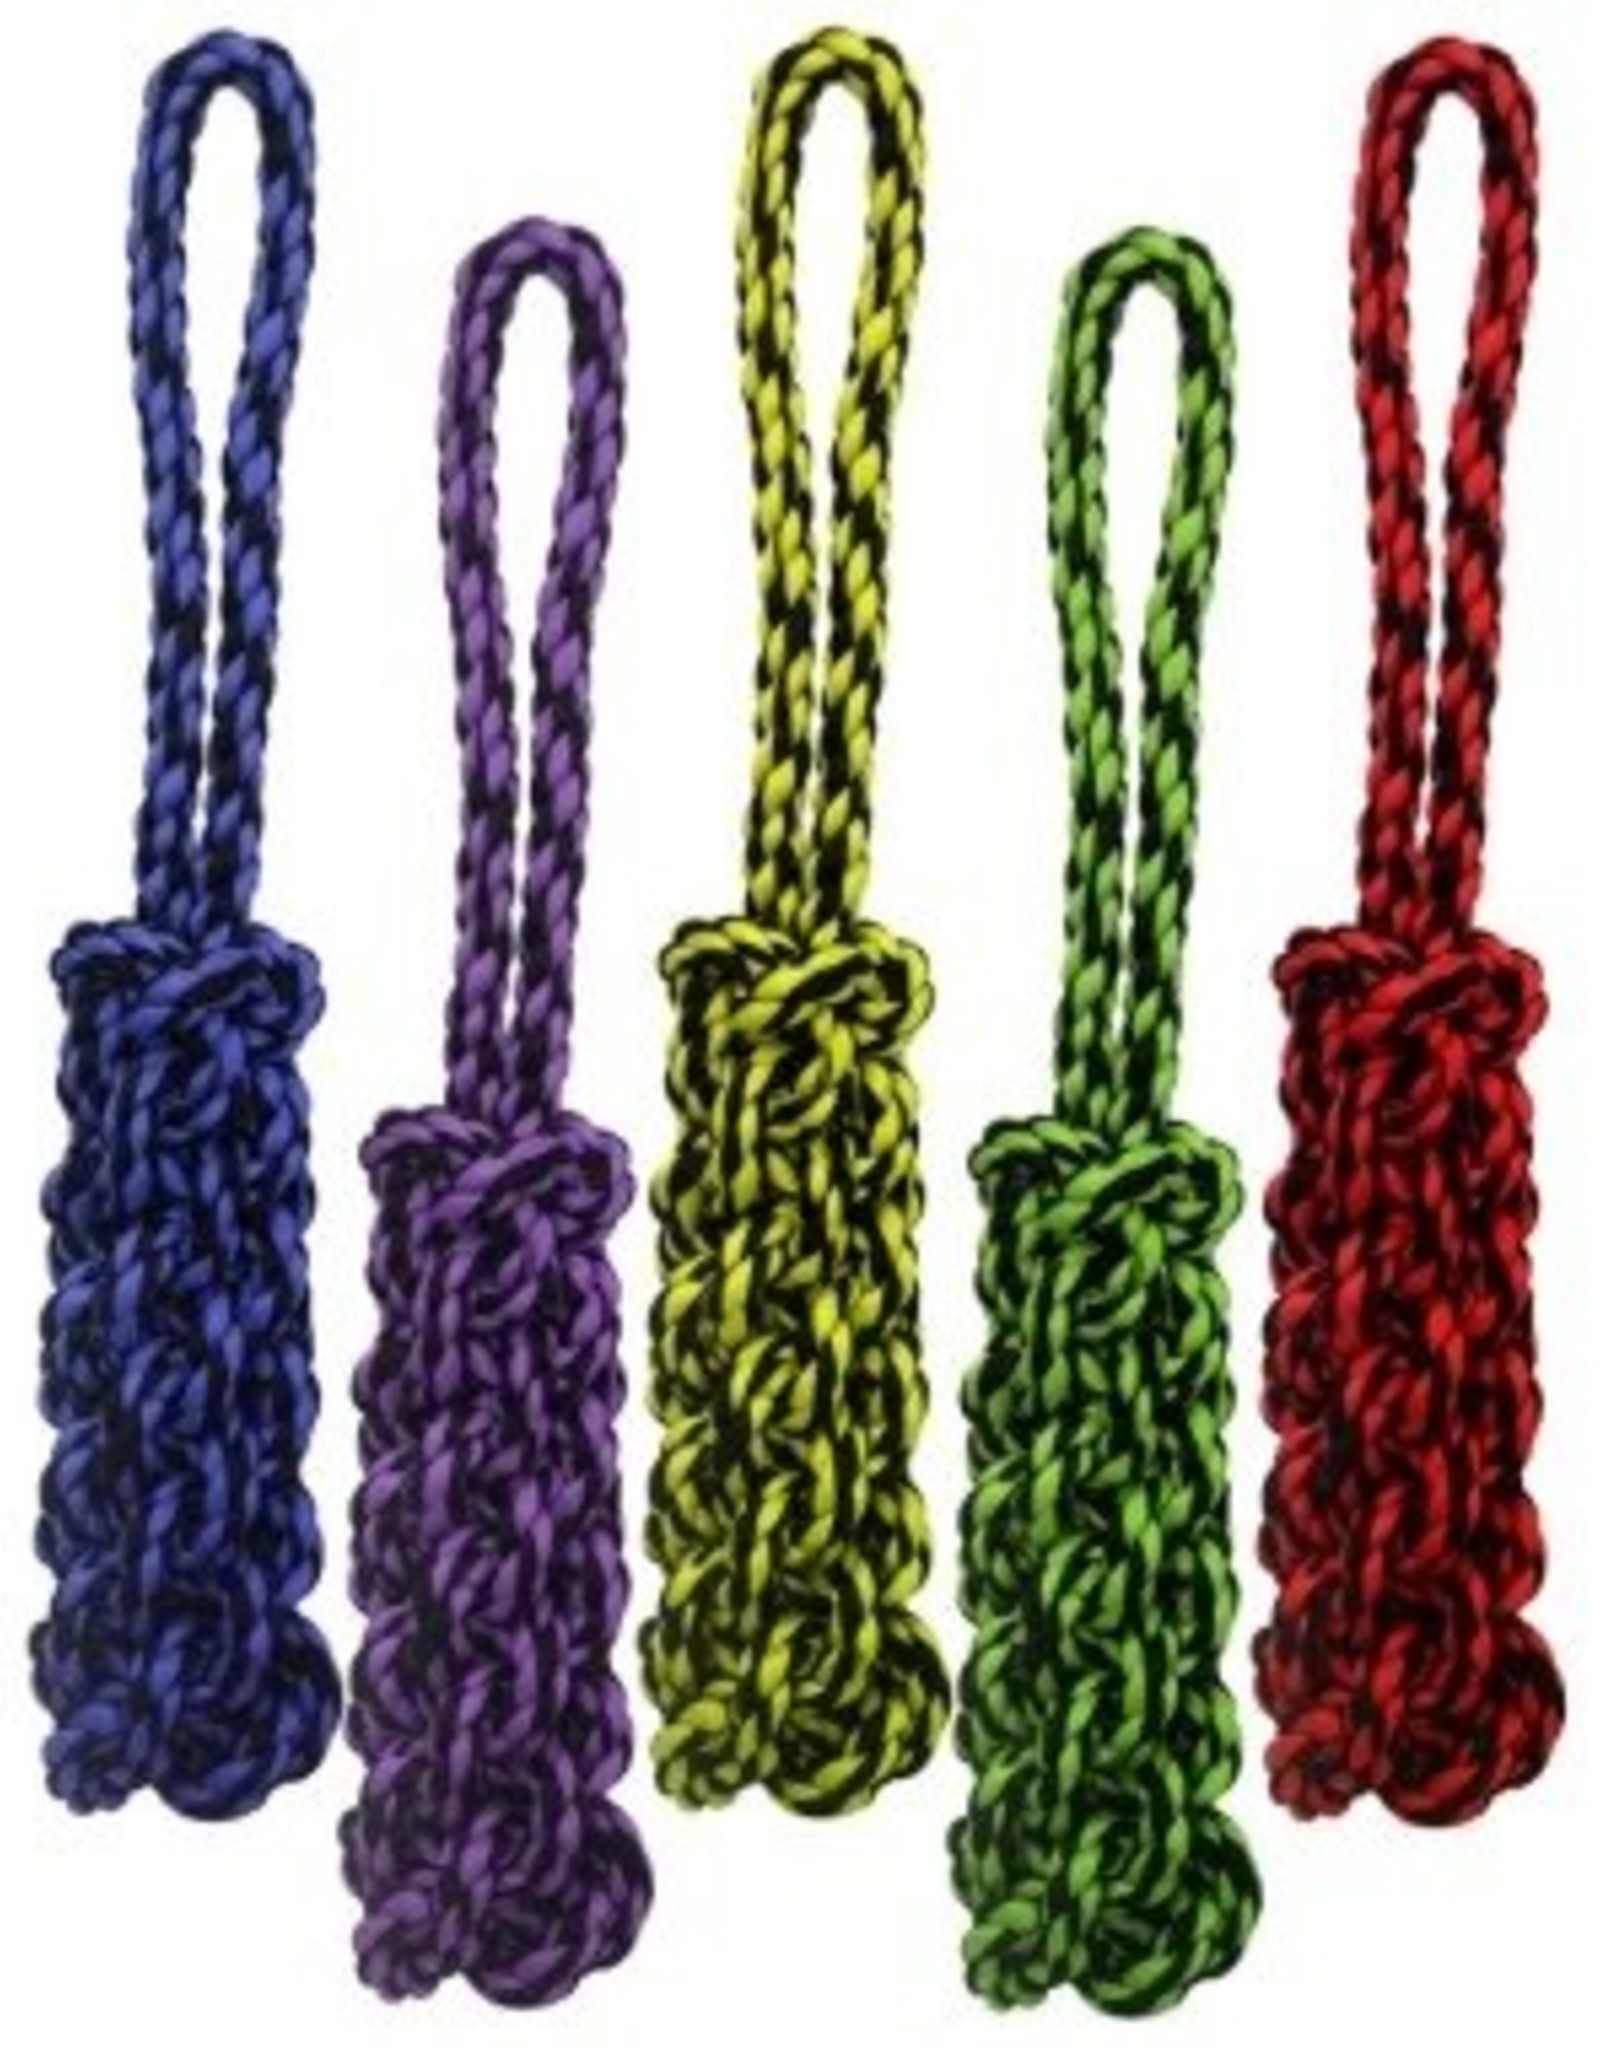 Nuts For Knots Braided Rope Tug - 16 inch